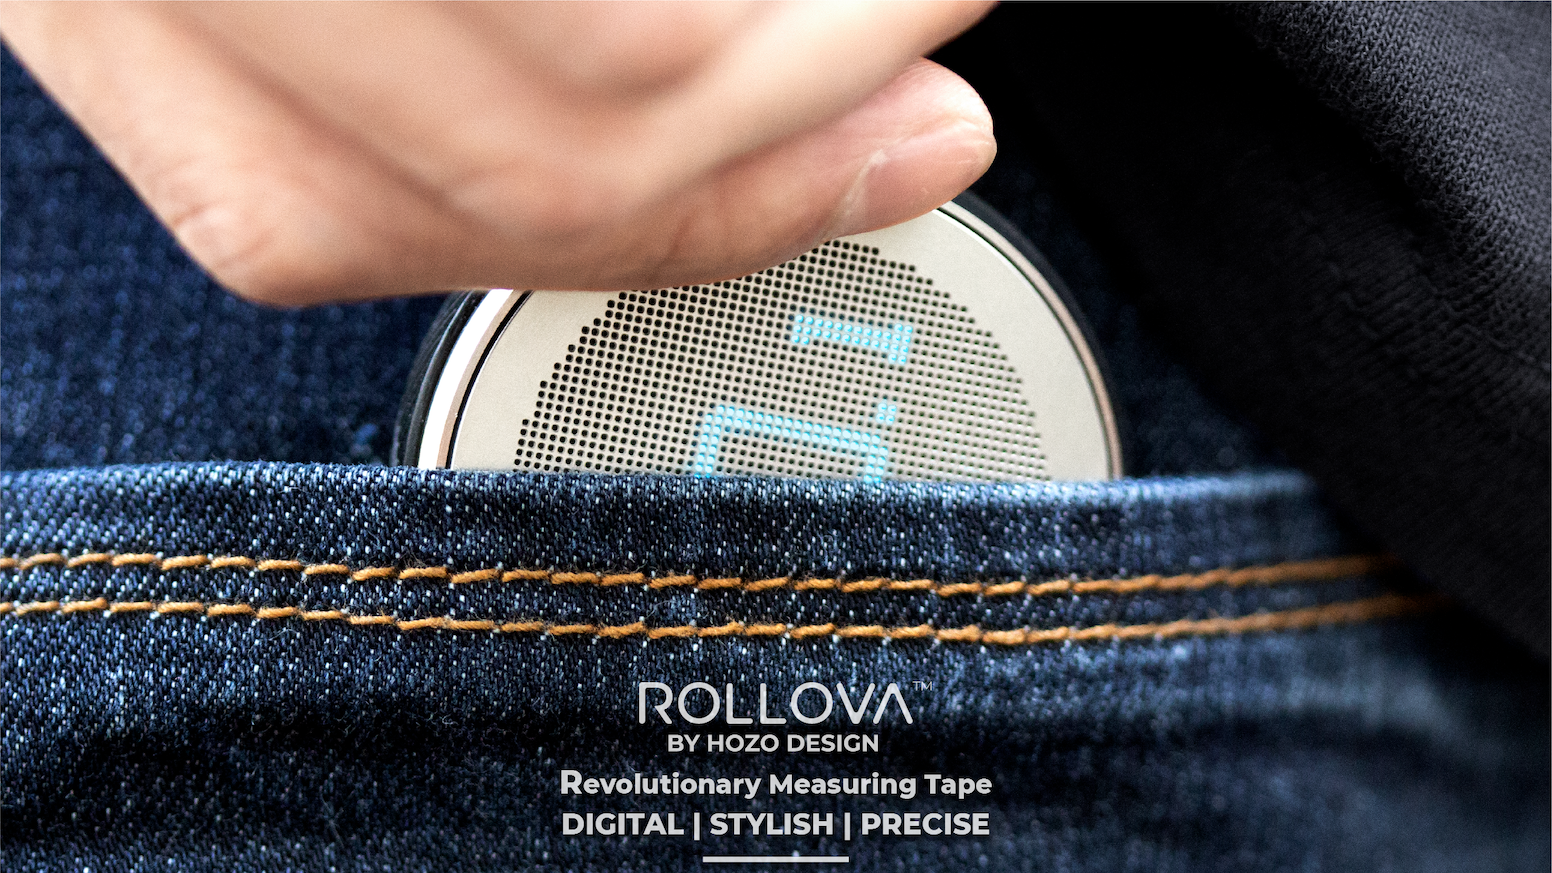 ROLLOVA! The World's First Compact Digital Rolling Ruler